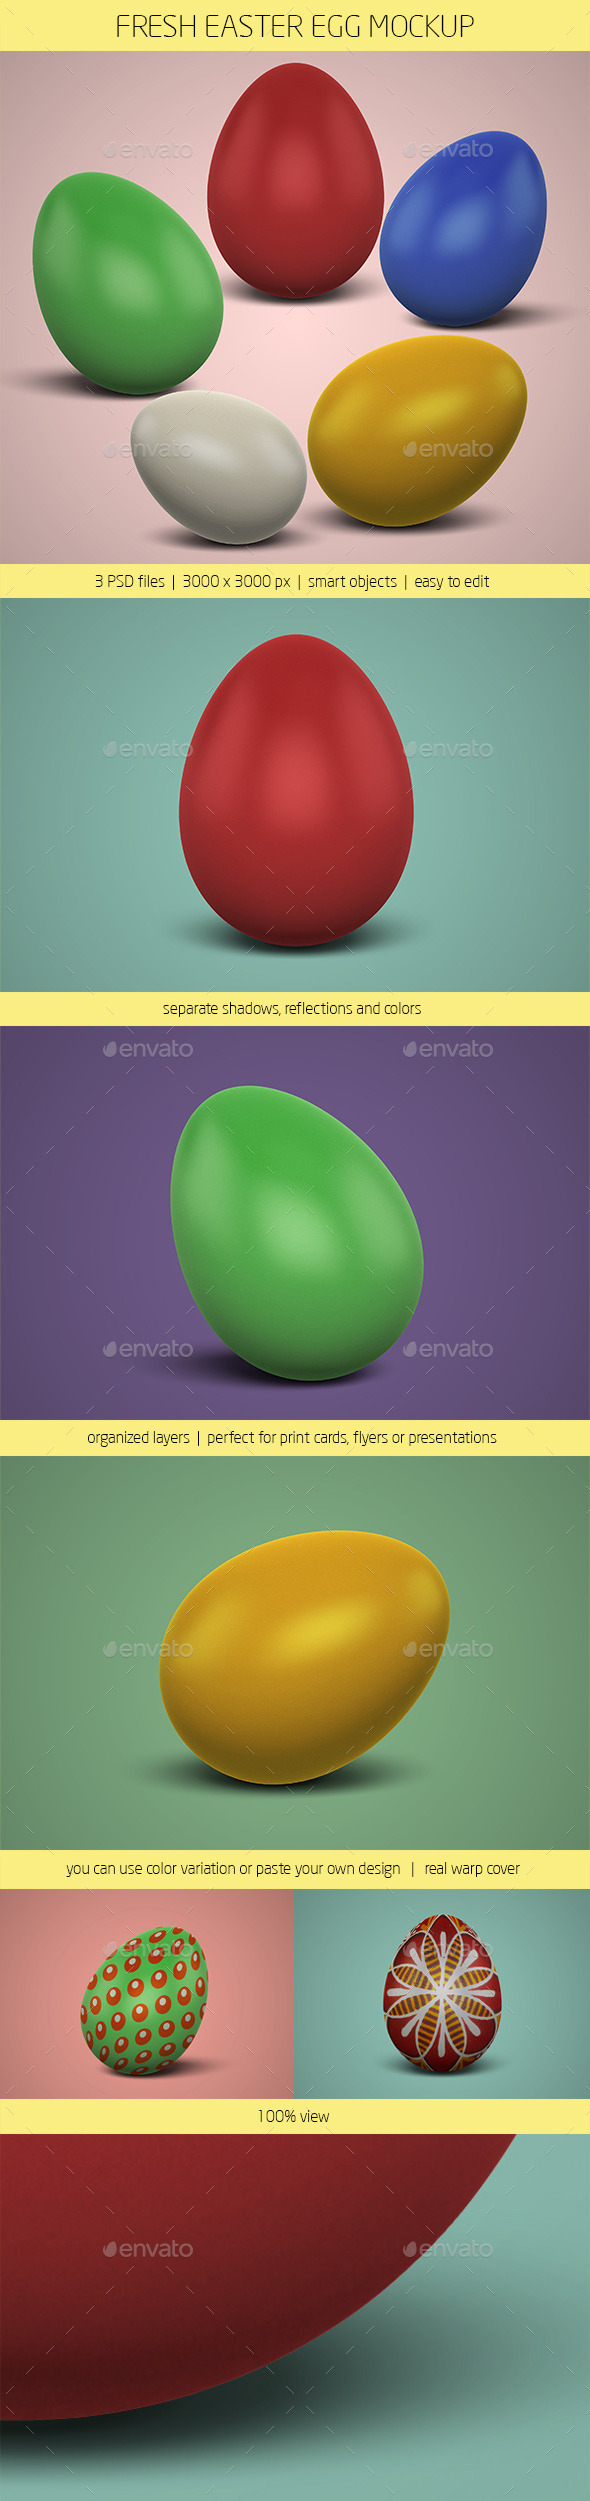 GraphicRiver Fresh Easter Egg Mockup 10903752